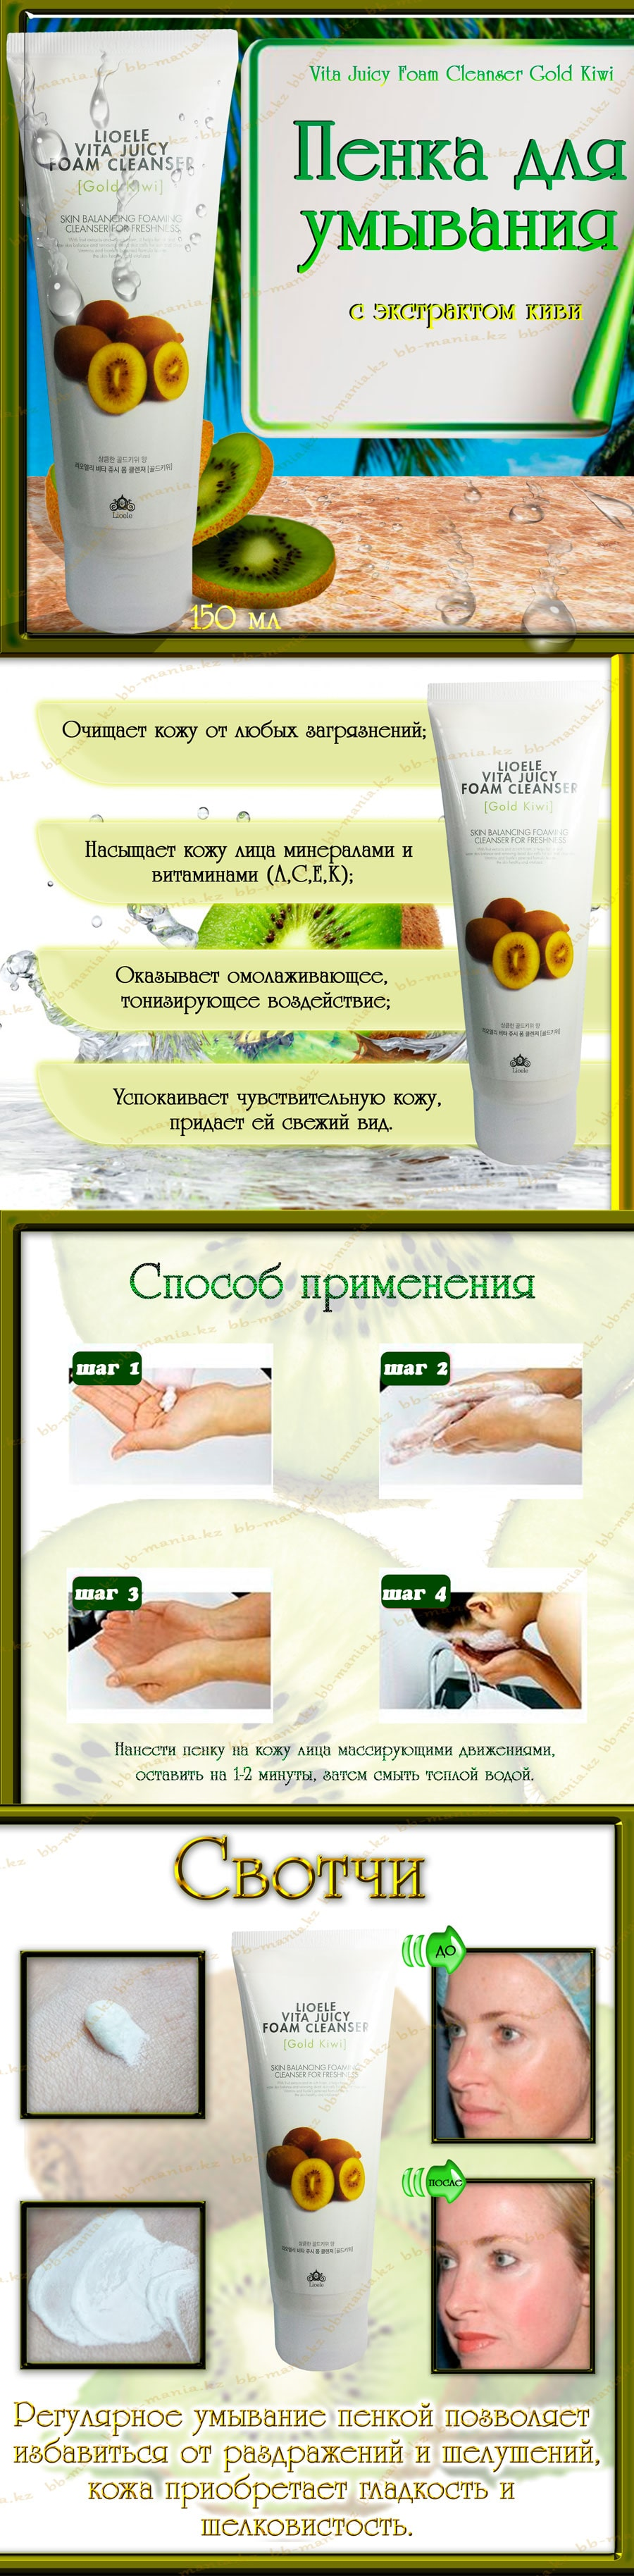 Vita-Juicy-Foam-Cleanser-Gold-Kiwi-min